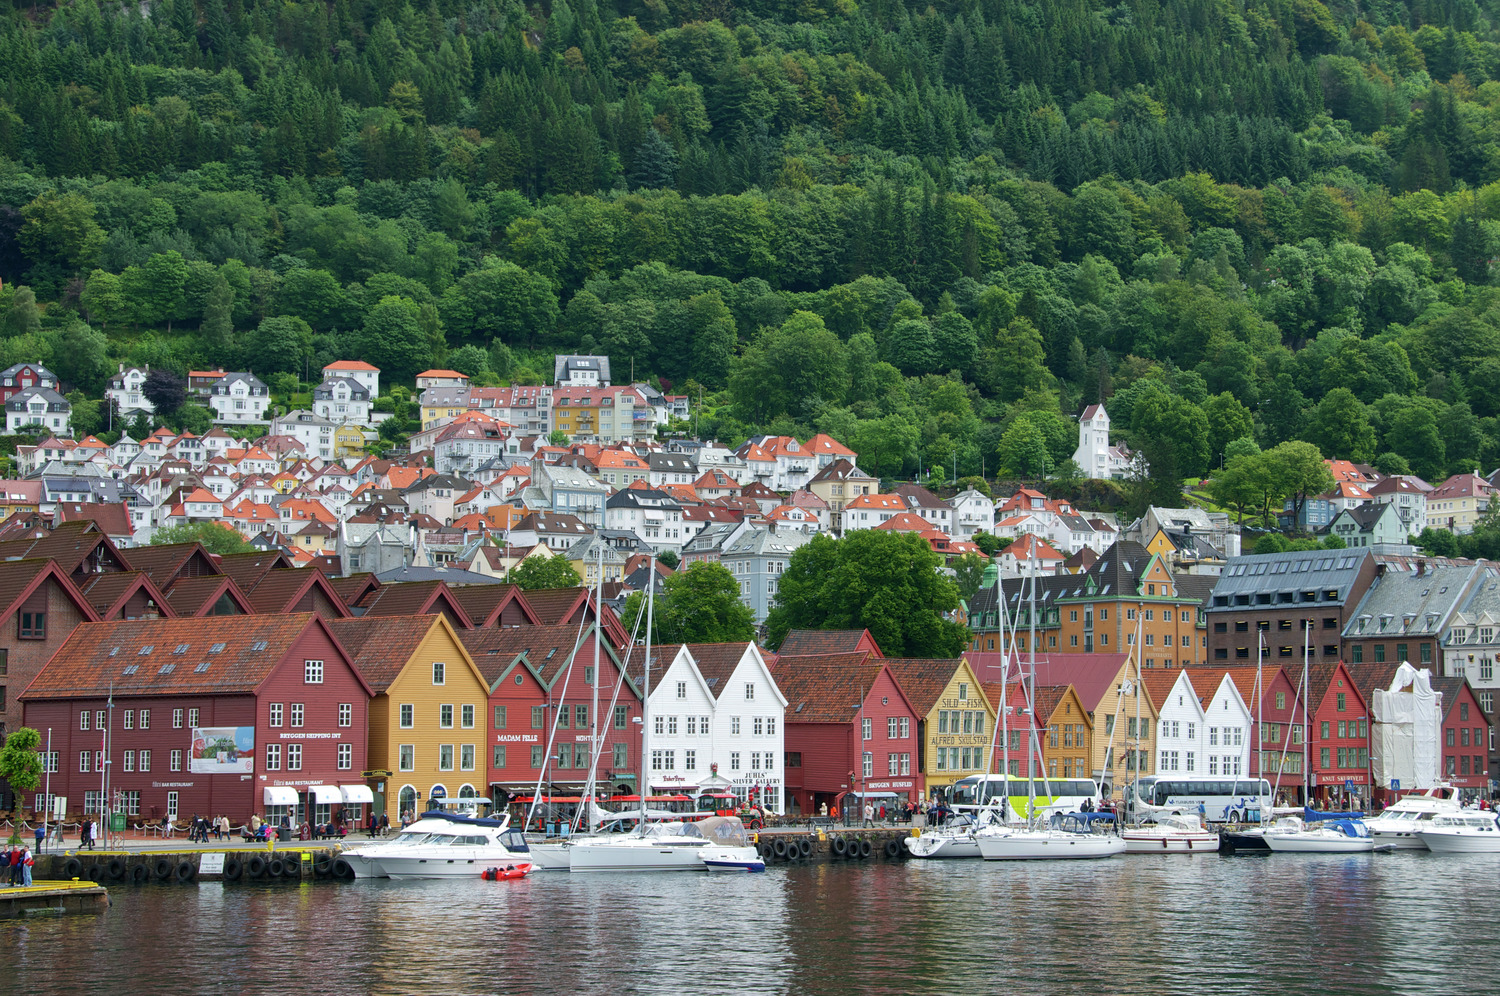 Bryggen-the-old-wharf-of-Bergen-062014-99-0097_1500